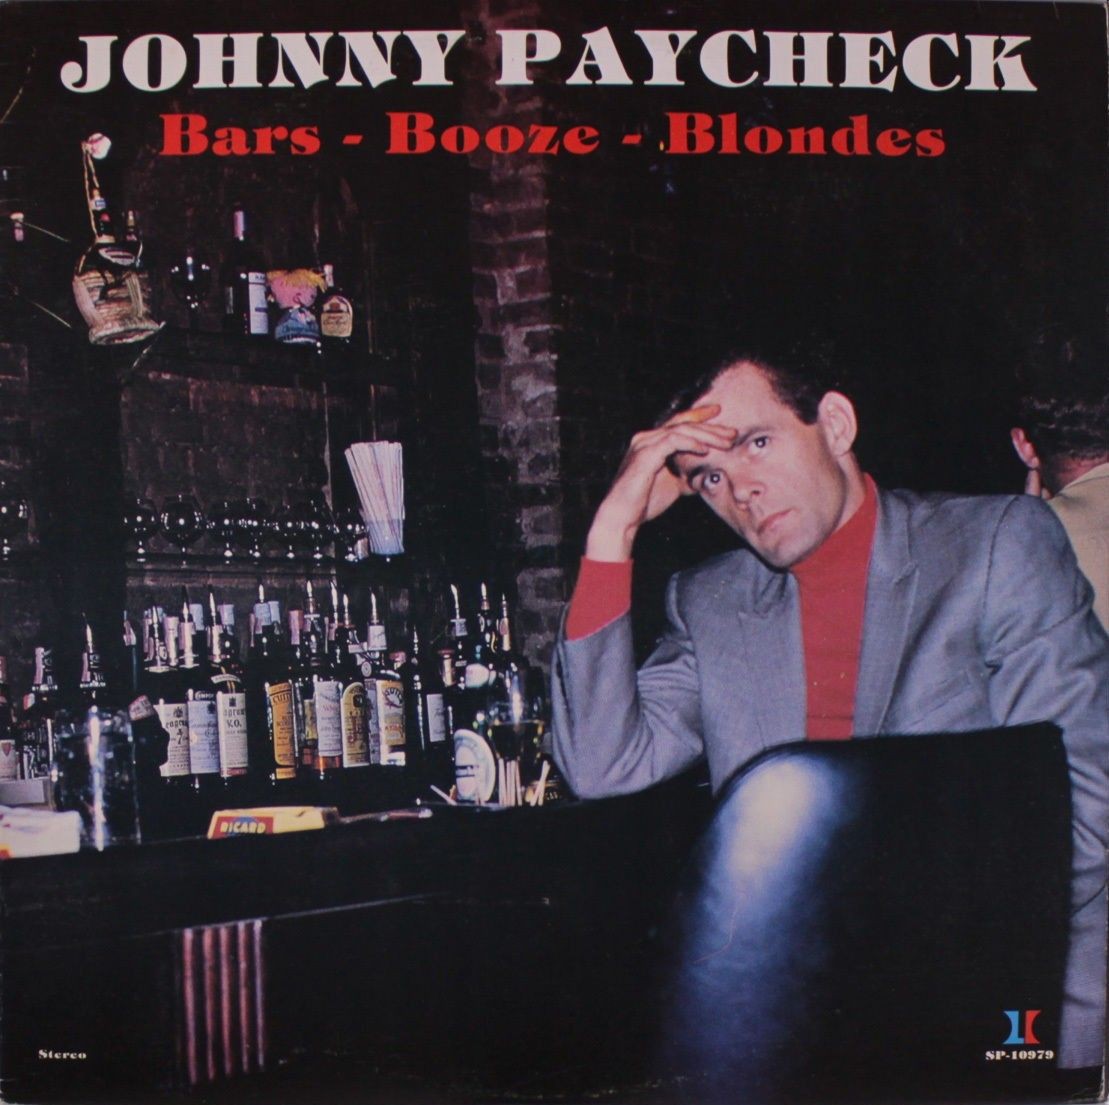 Johnny paycheck johnny paycheck album fictional characters